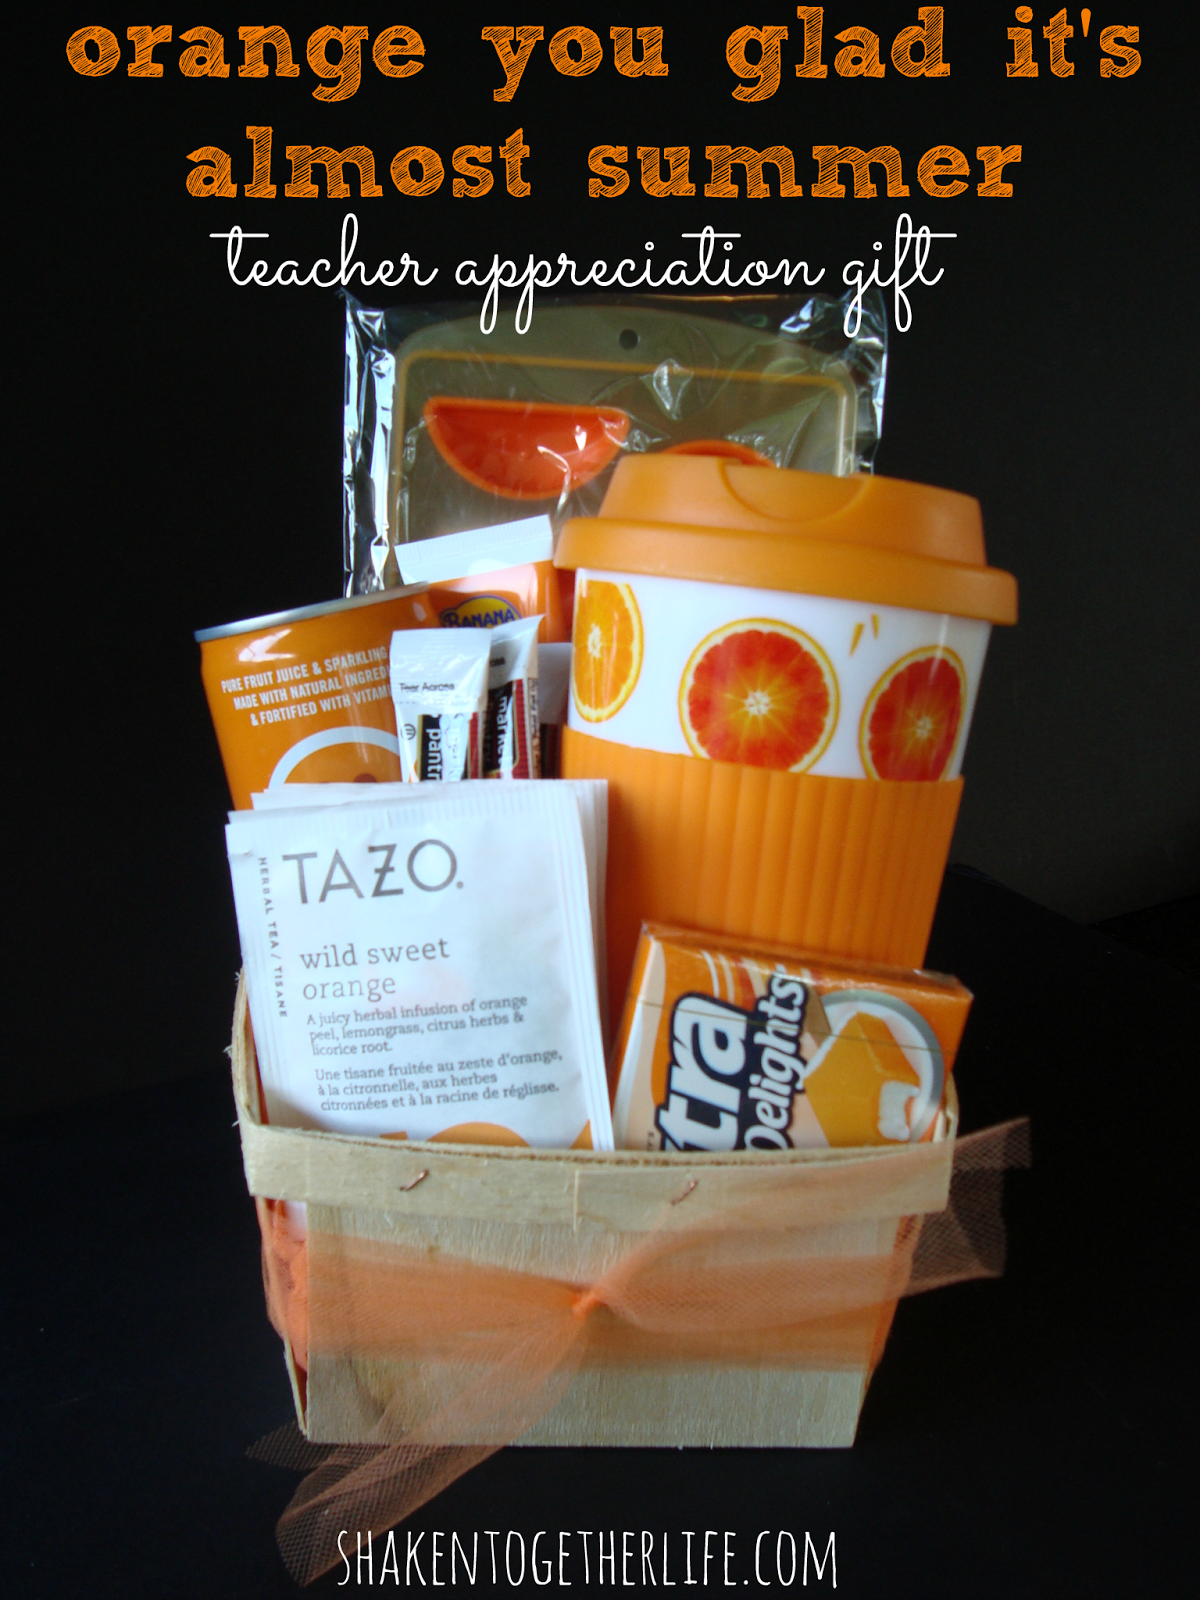 25+ MORE Teacher Appreciation Week Ideas